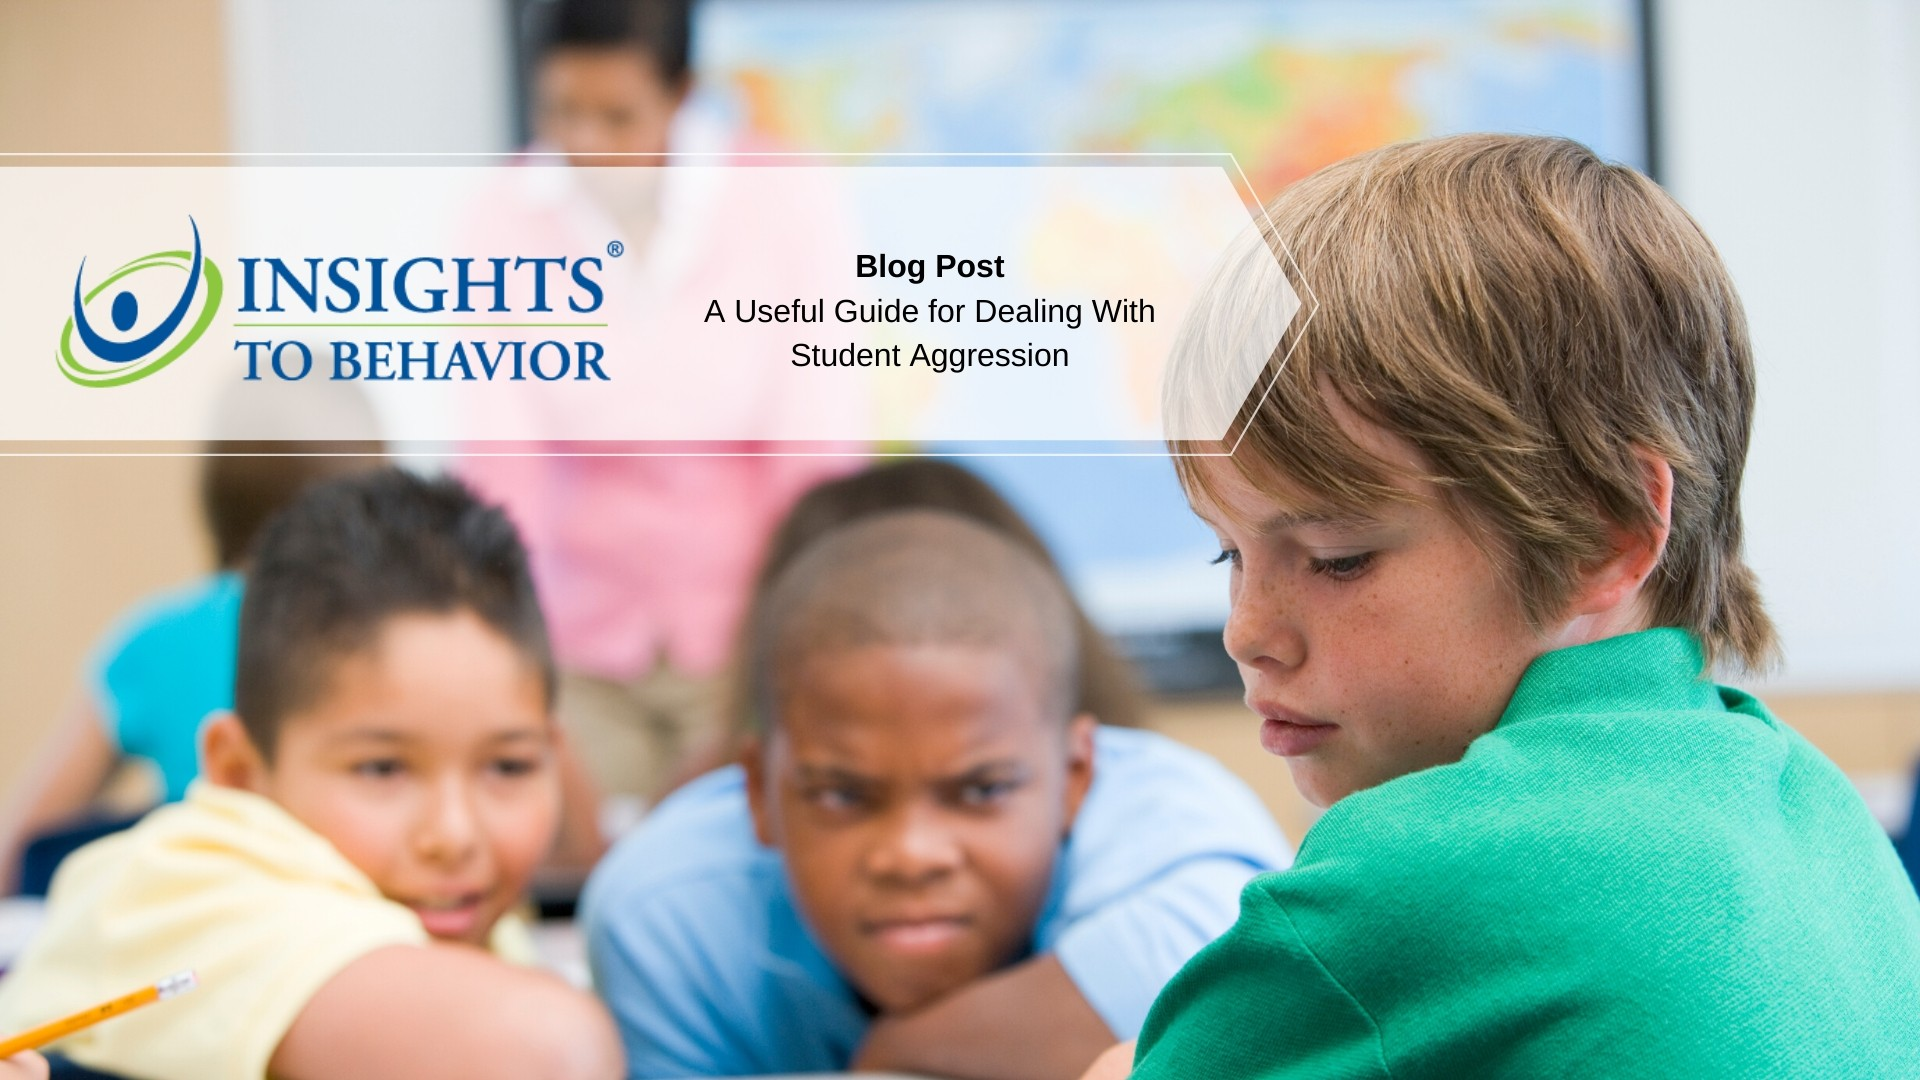 A useful guide for dealing with student aggression in the classroom.